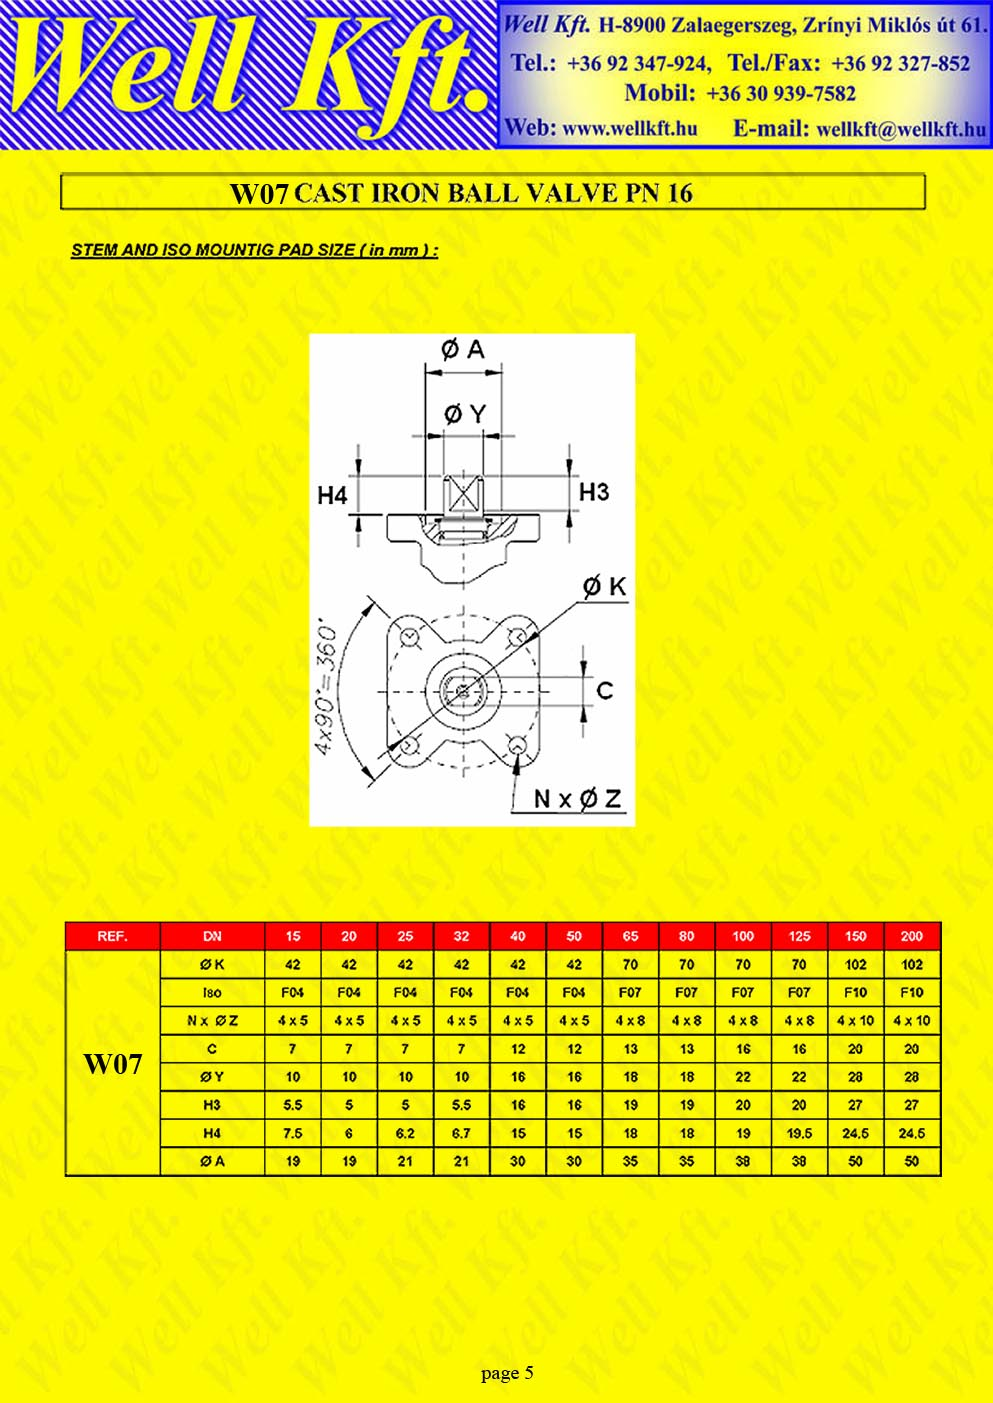 Ball valve 2 pieces cast iron ISO pad PN 16  (5.)